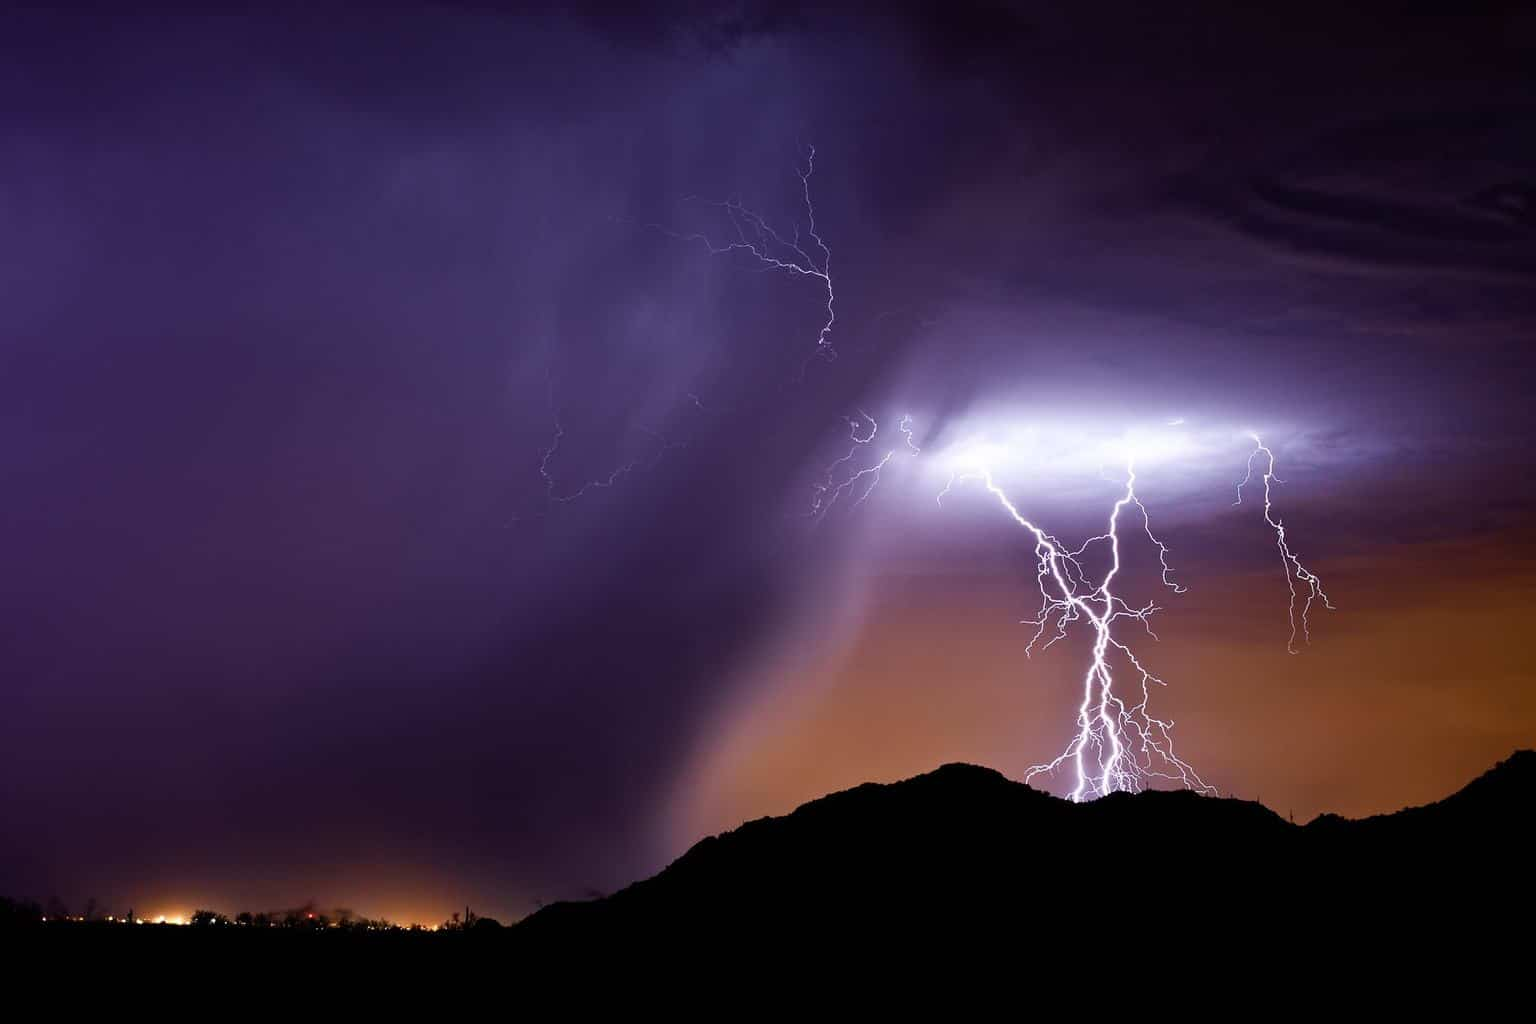 A photo of lightning I took in Arizona about five years ago...and at the time I titled it Purple Rain. Wanted to share it again today for obvious reasons.#ripPrince